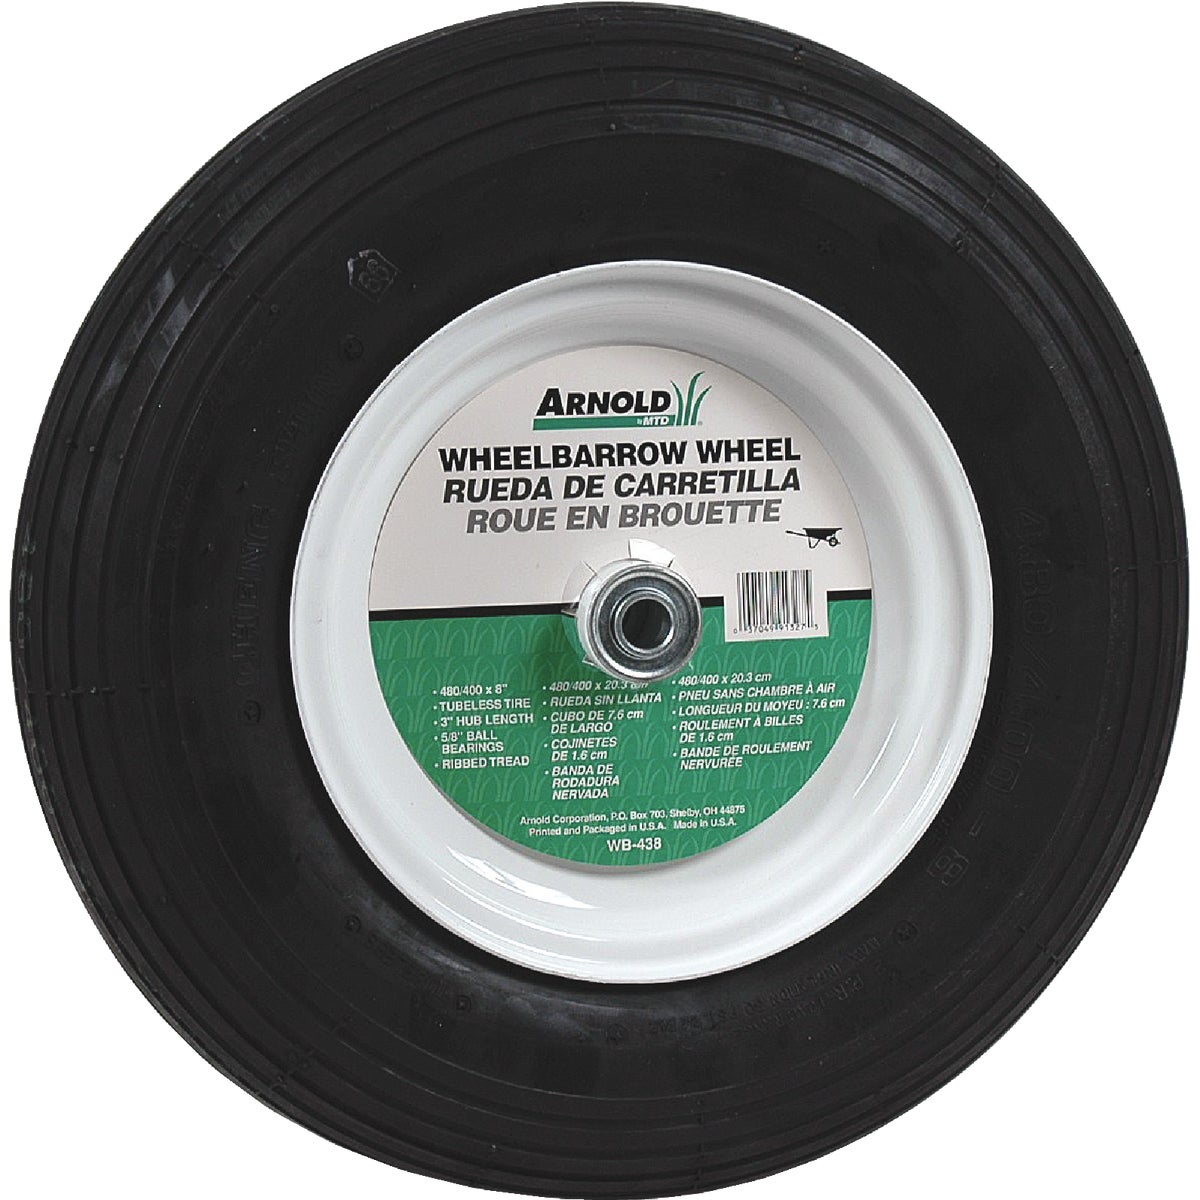 480/800X8 WHLBRW WHEEL - WB-438 by Arnold Corp